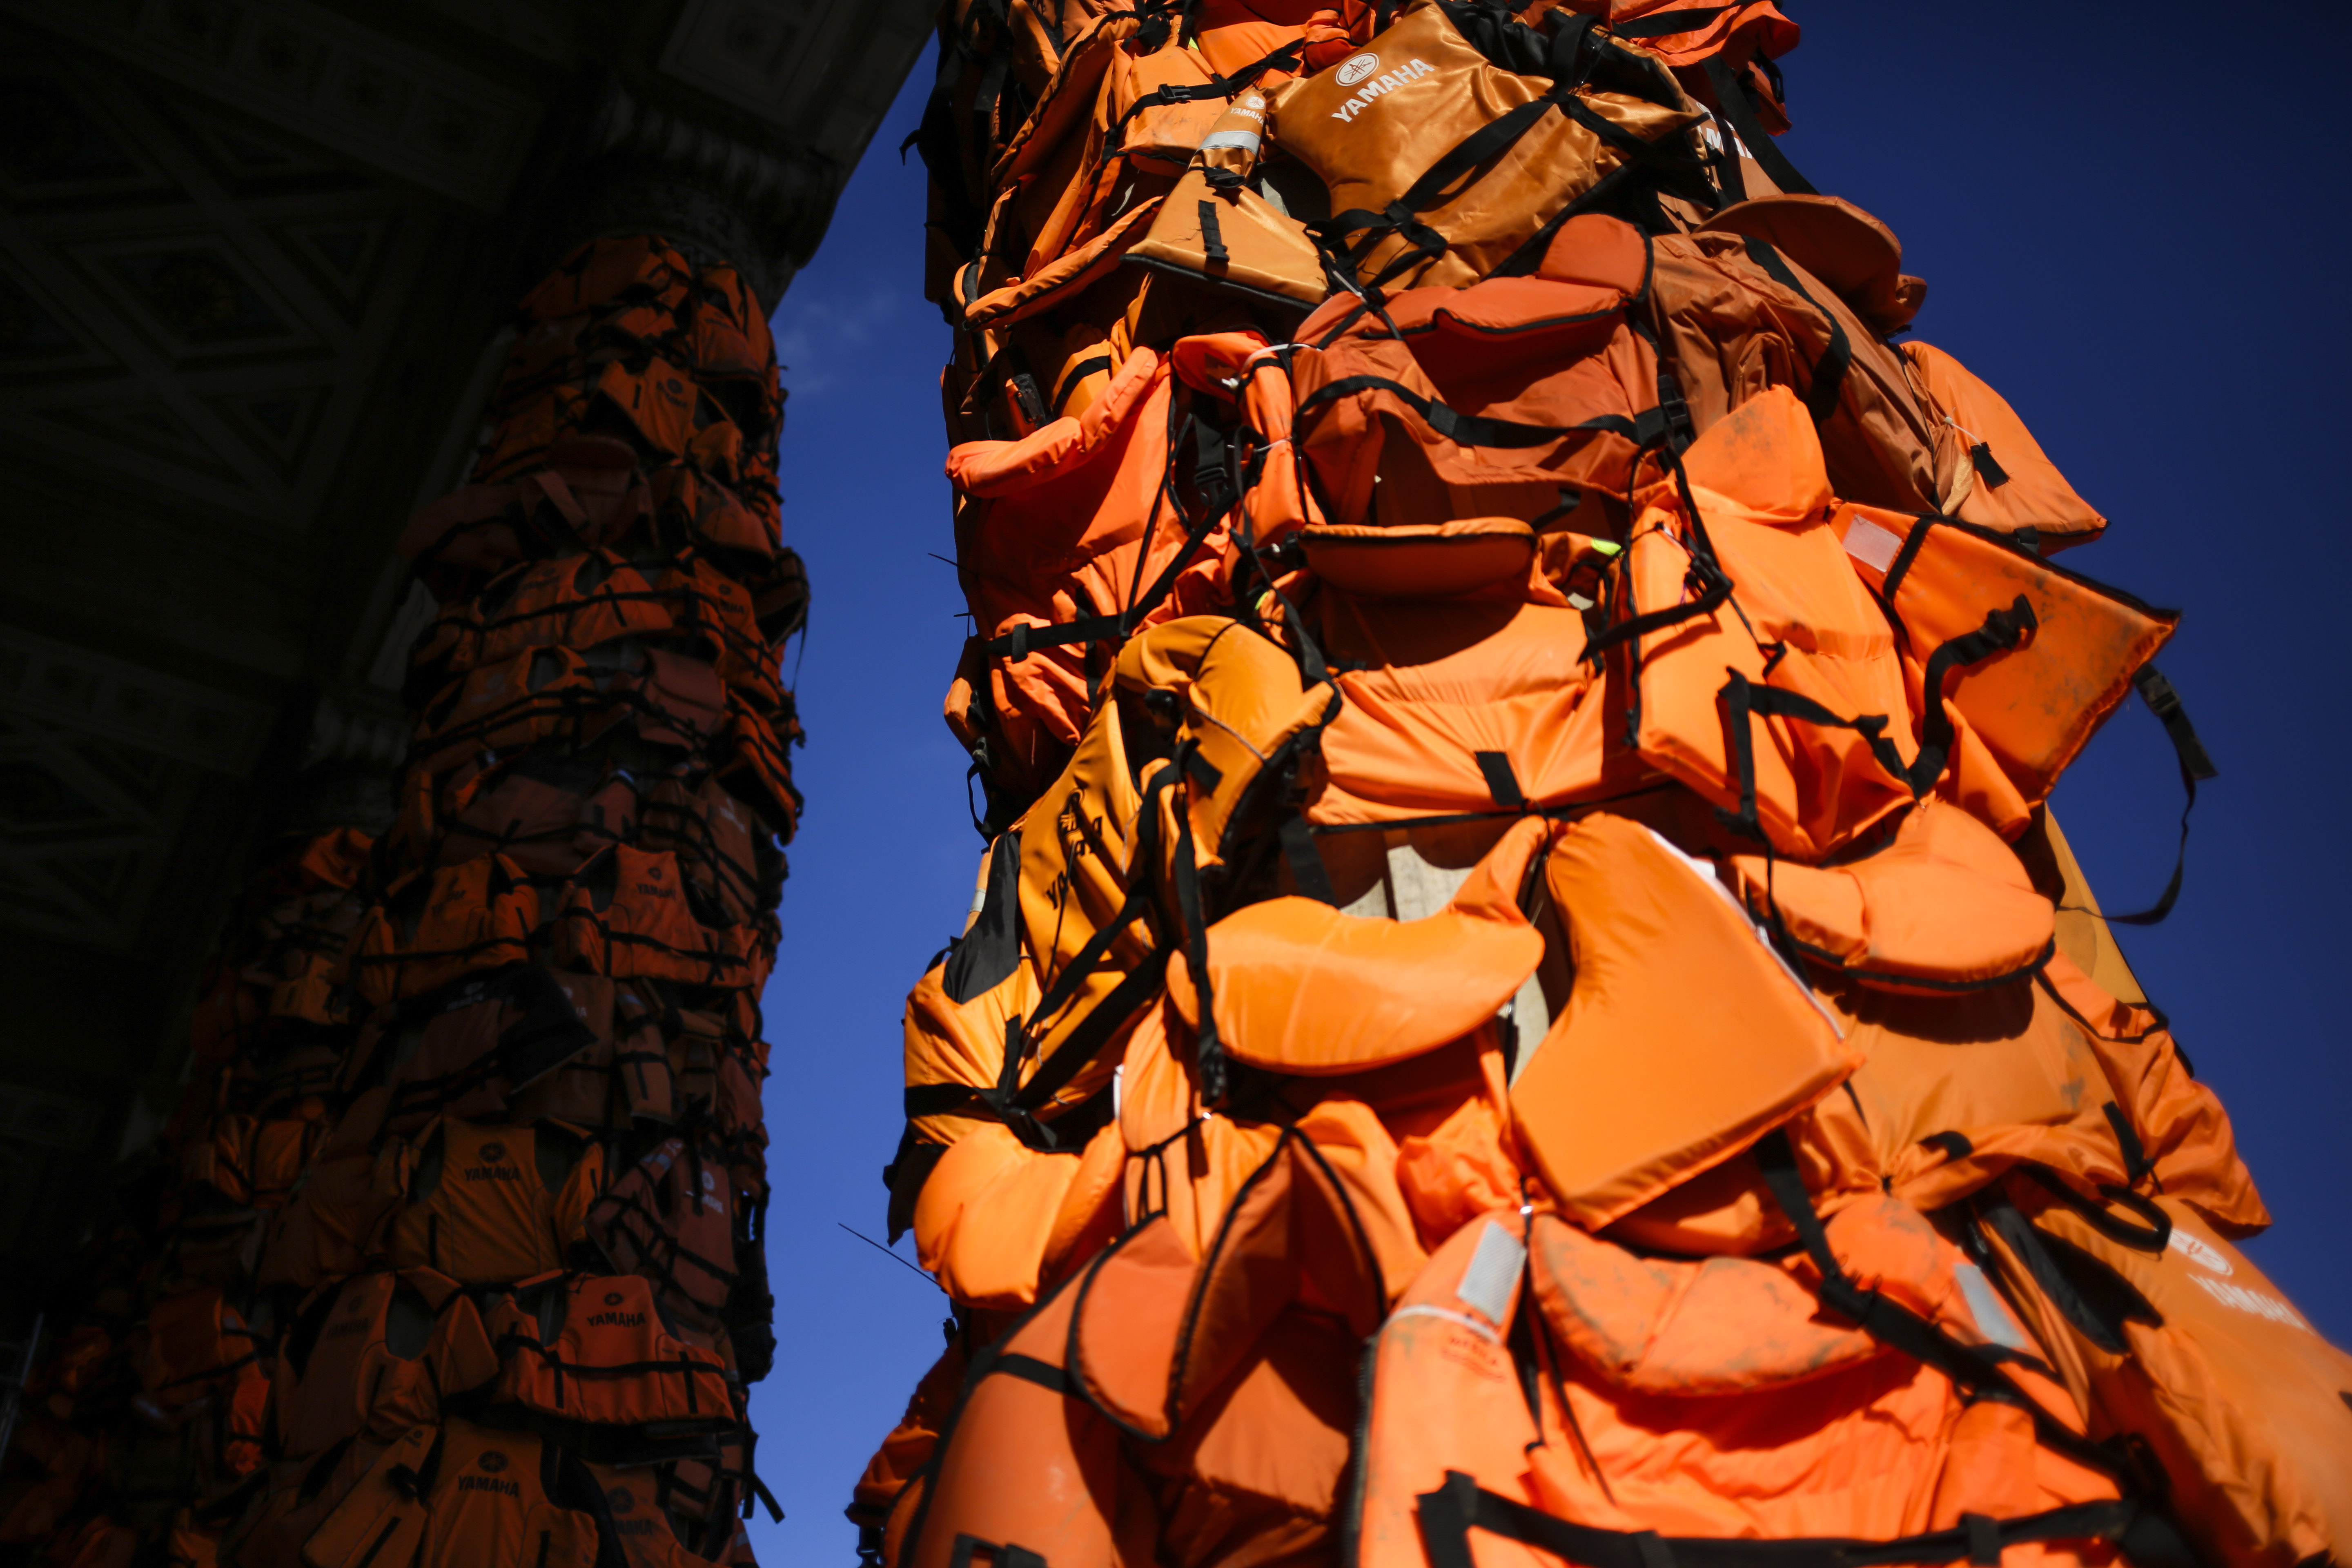 A art installation by Chinese artist Ai Weiwei with life vests used by refugees and collected on the Greek island of Lesbos is set up at the Konzerthaus Berlin (Concert Hall Berlin) for the Cinema For Peace gala alongside the 2016 Berlinale Film Festival in Berlin, Saturday, Feb. 13, 2016. The charity gala will take place at the Konzerthaus on Monday, Feb. 15, 2016. (AP Photo/Markus Schreiber)